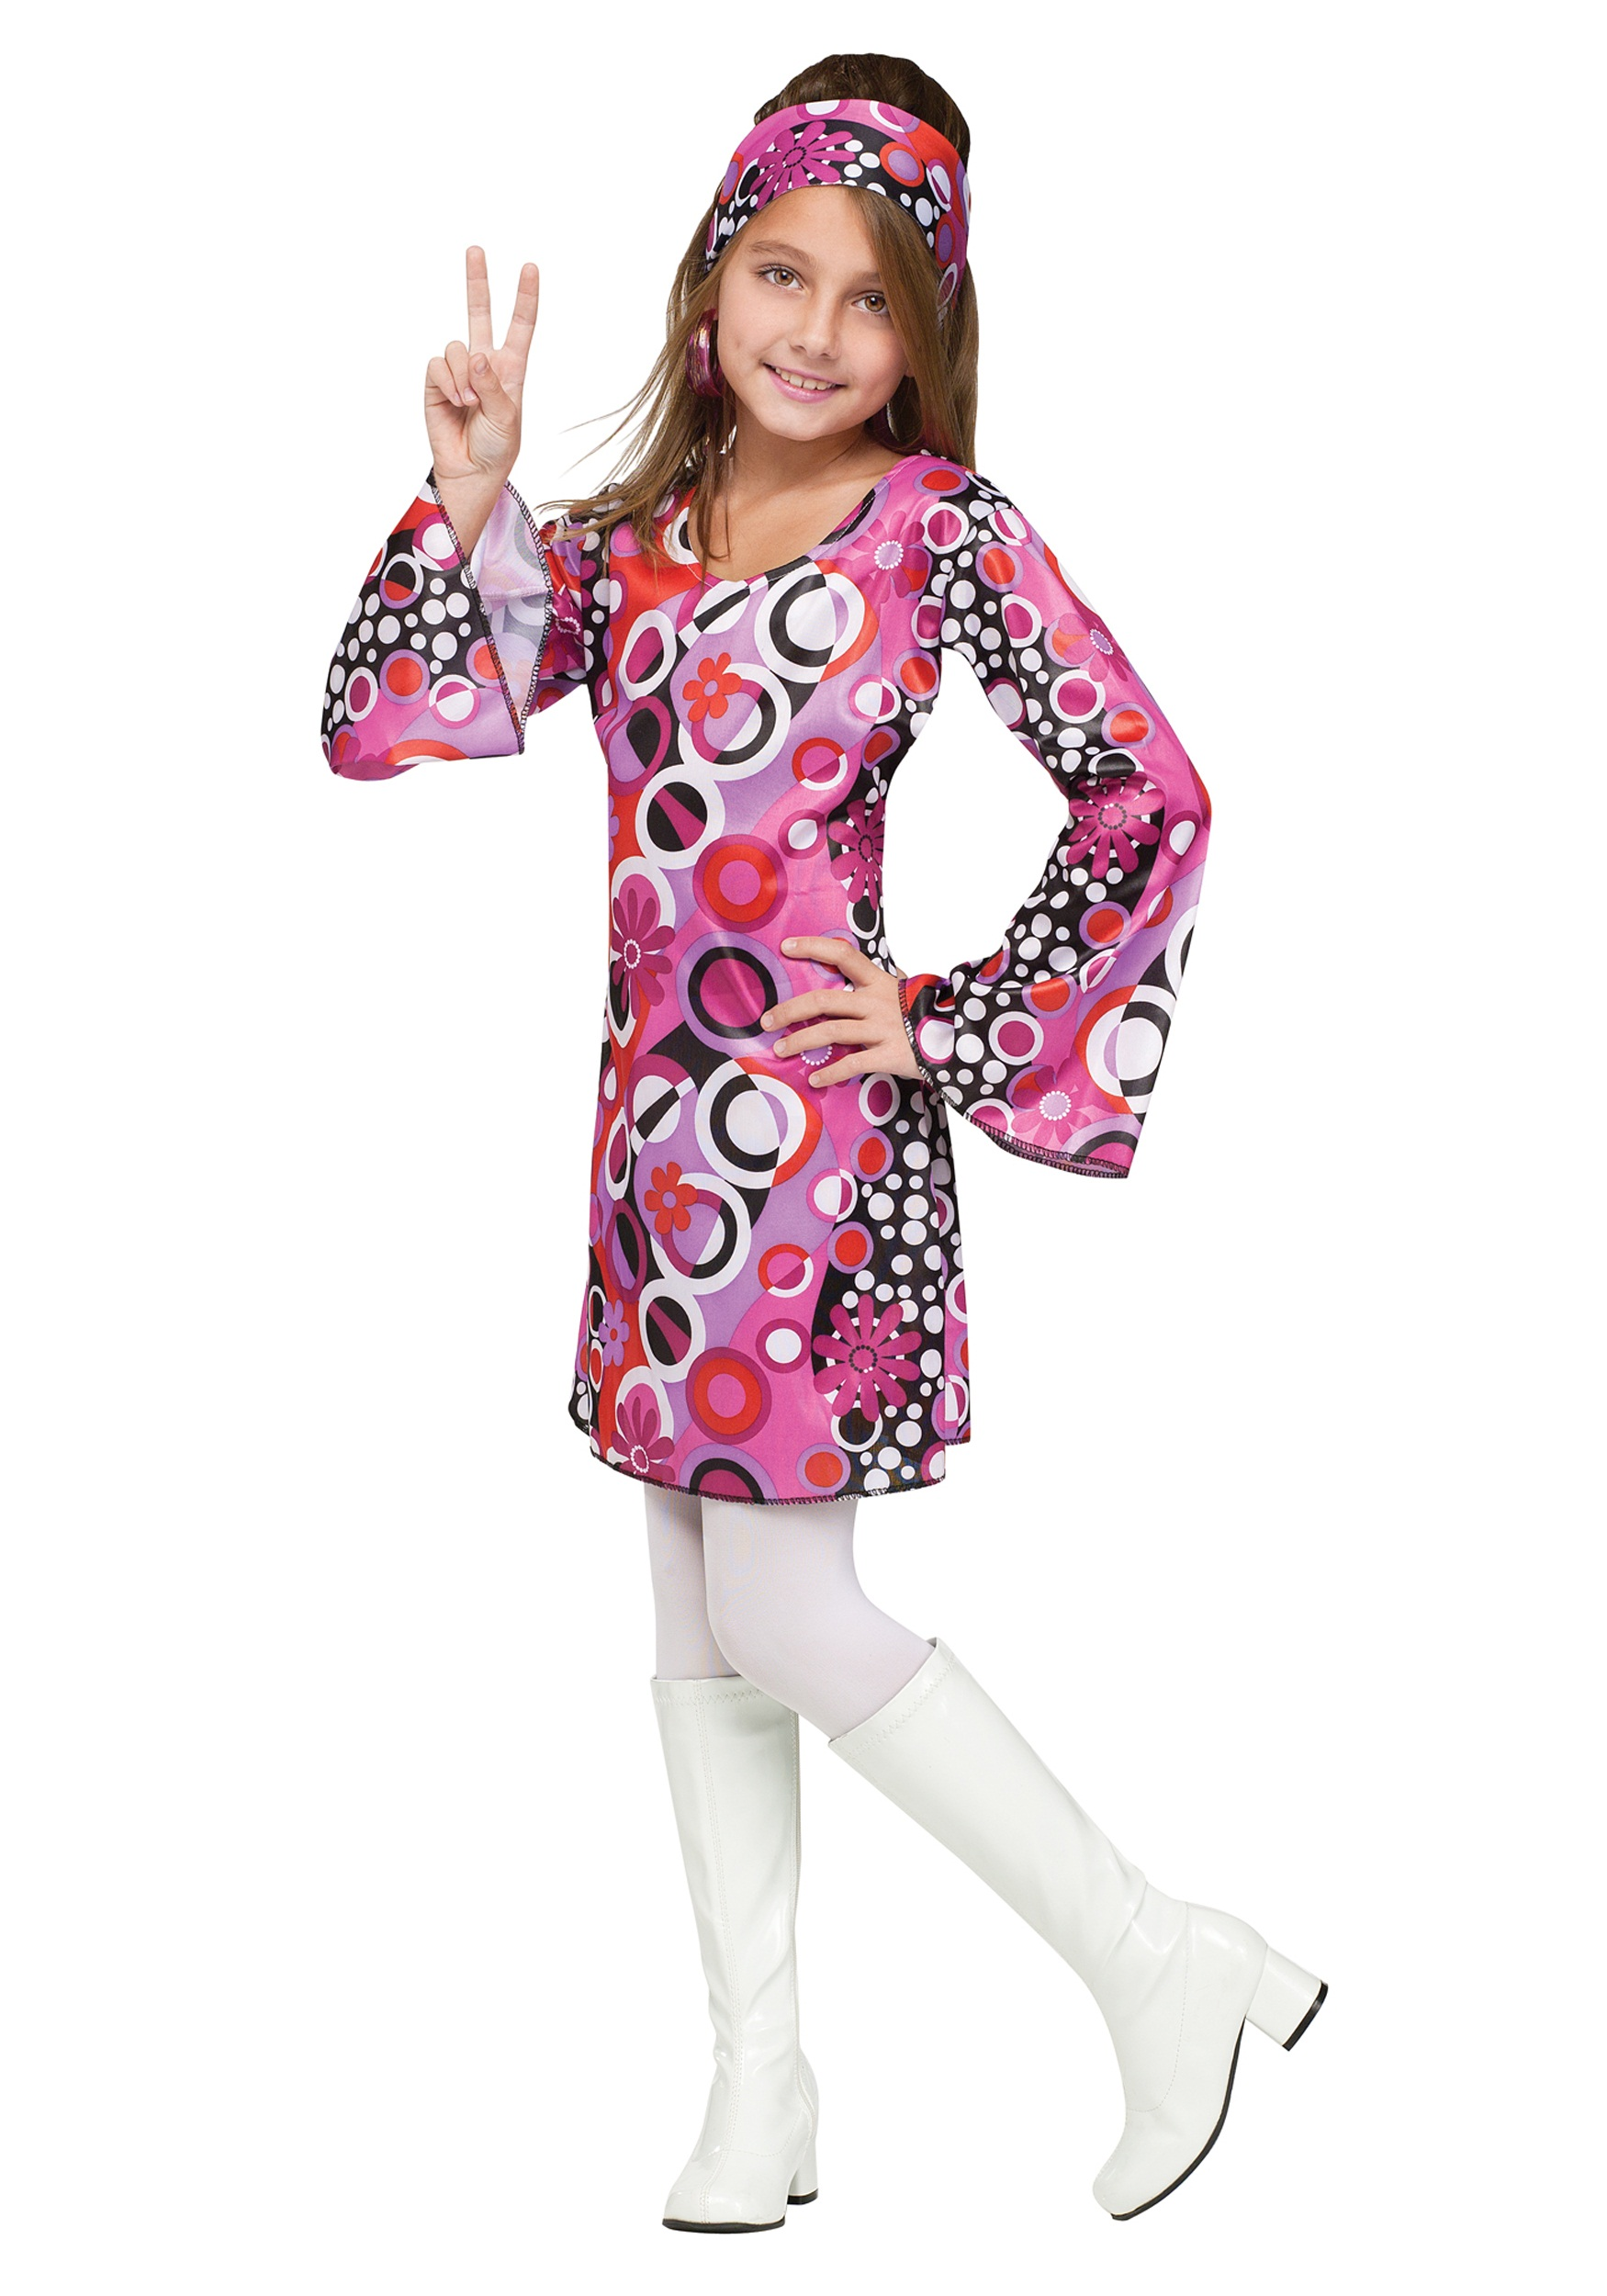 Feelinu0027 Groovy Girls Costume  sc 1 st  Fun.com & Girlu0027s Feelinu0027 Groovy Costume